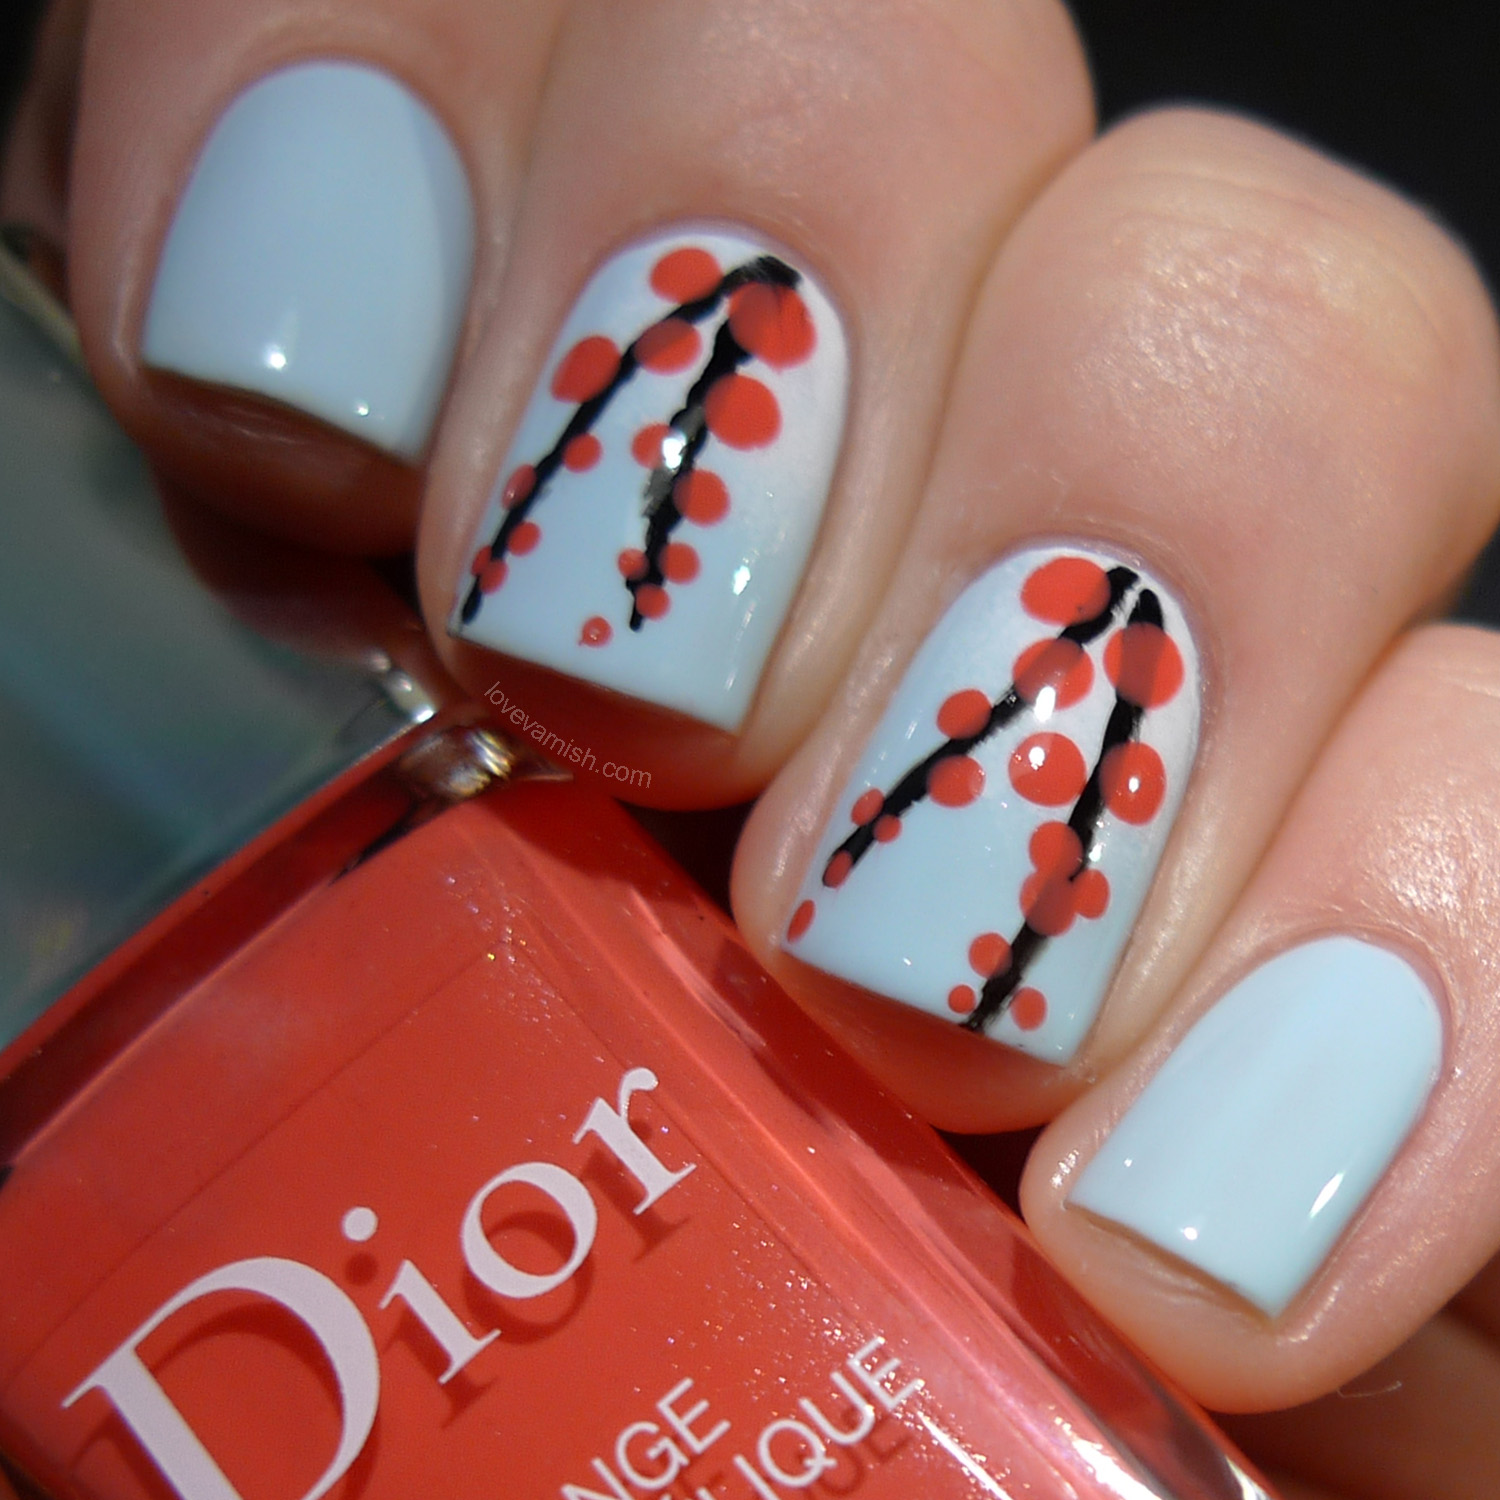 Dior Porcelaine and Dior Psychédélique nail art